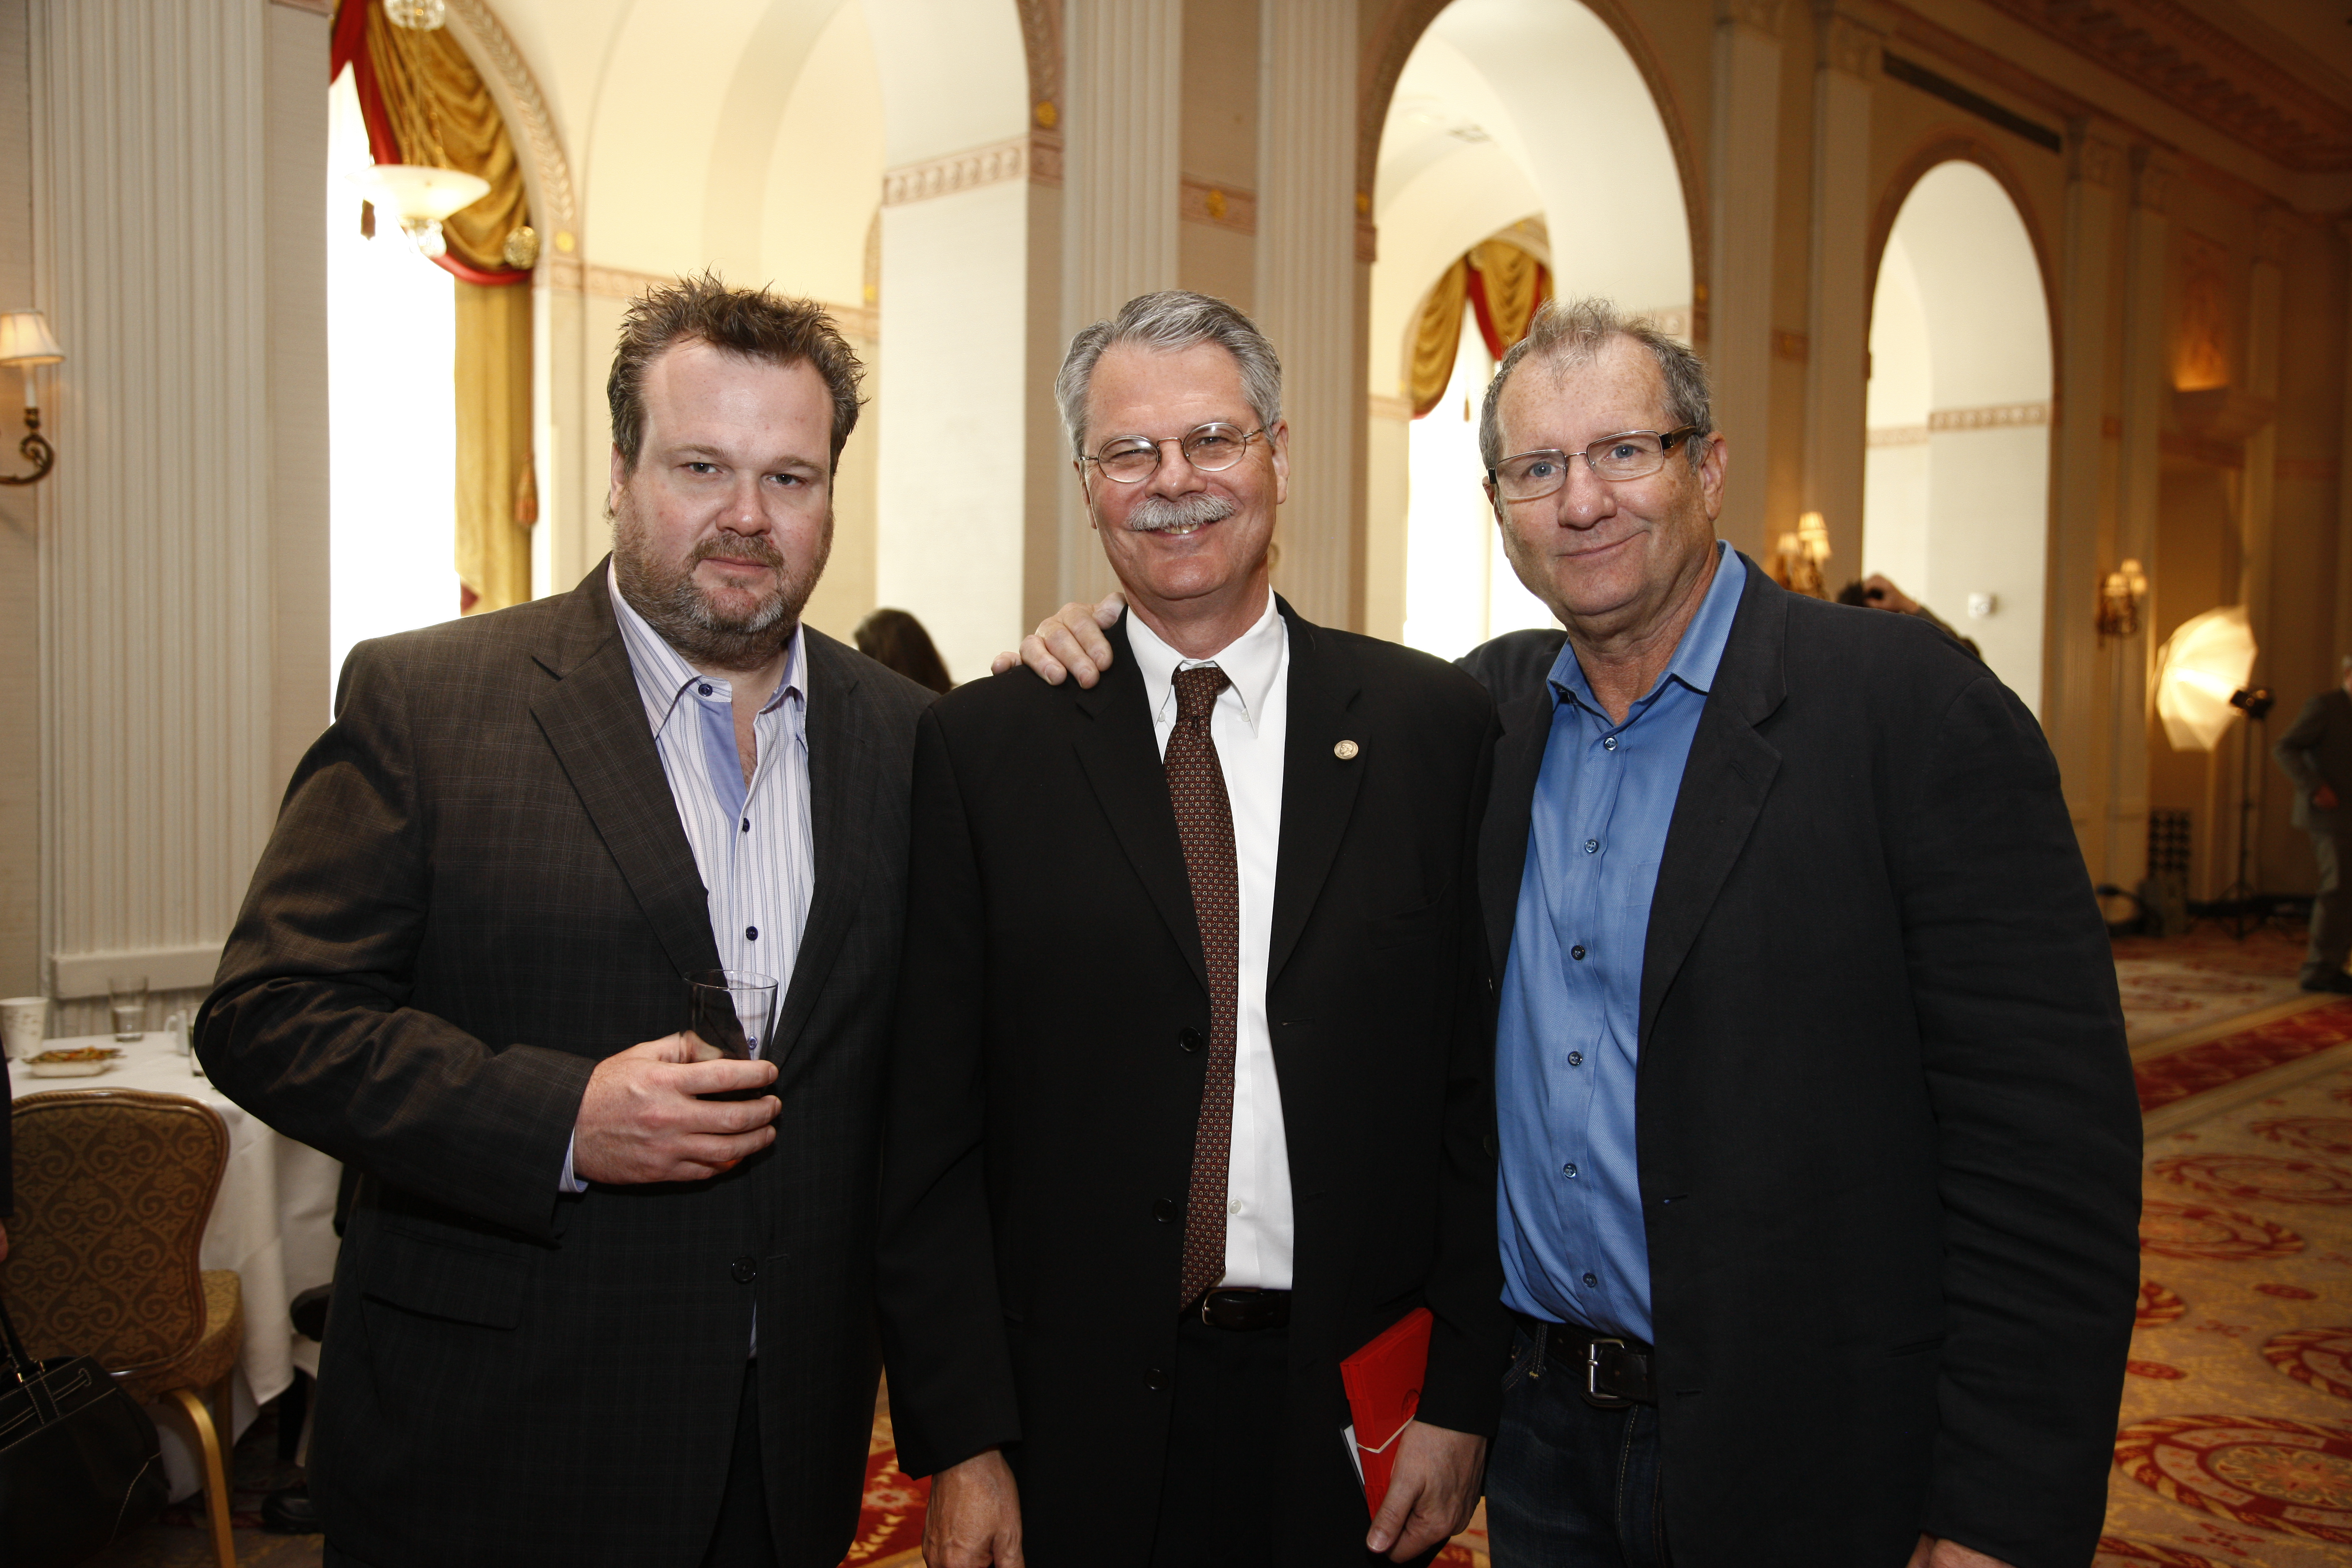 File:Eric Stonestreet, Horace Newcomb and Ed O'Neill, May 2010 (2).jpg